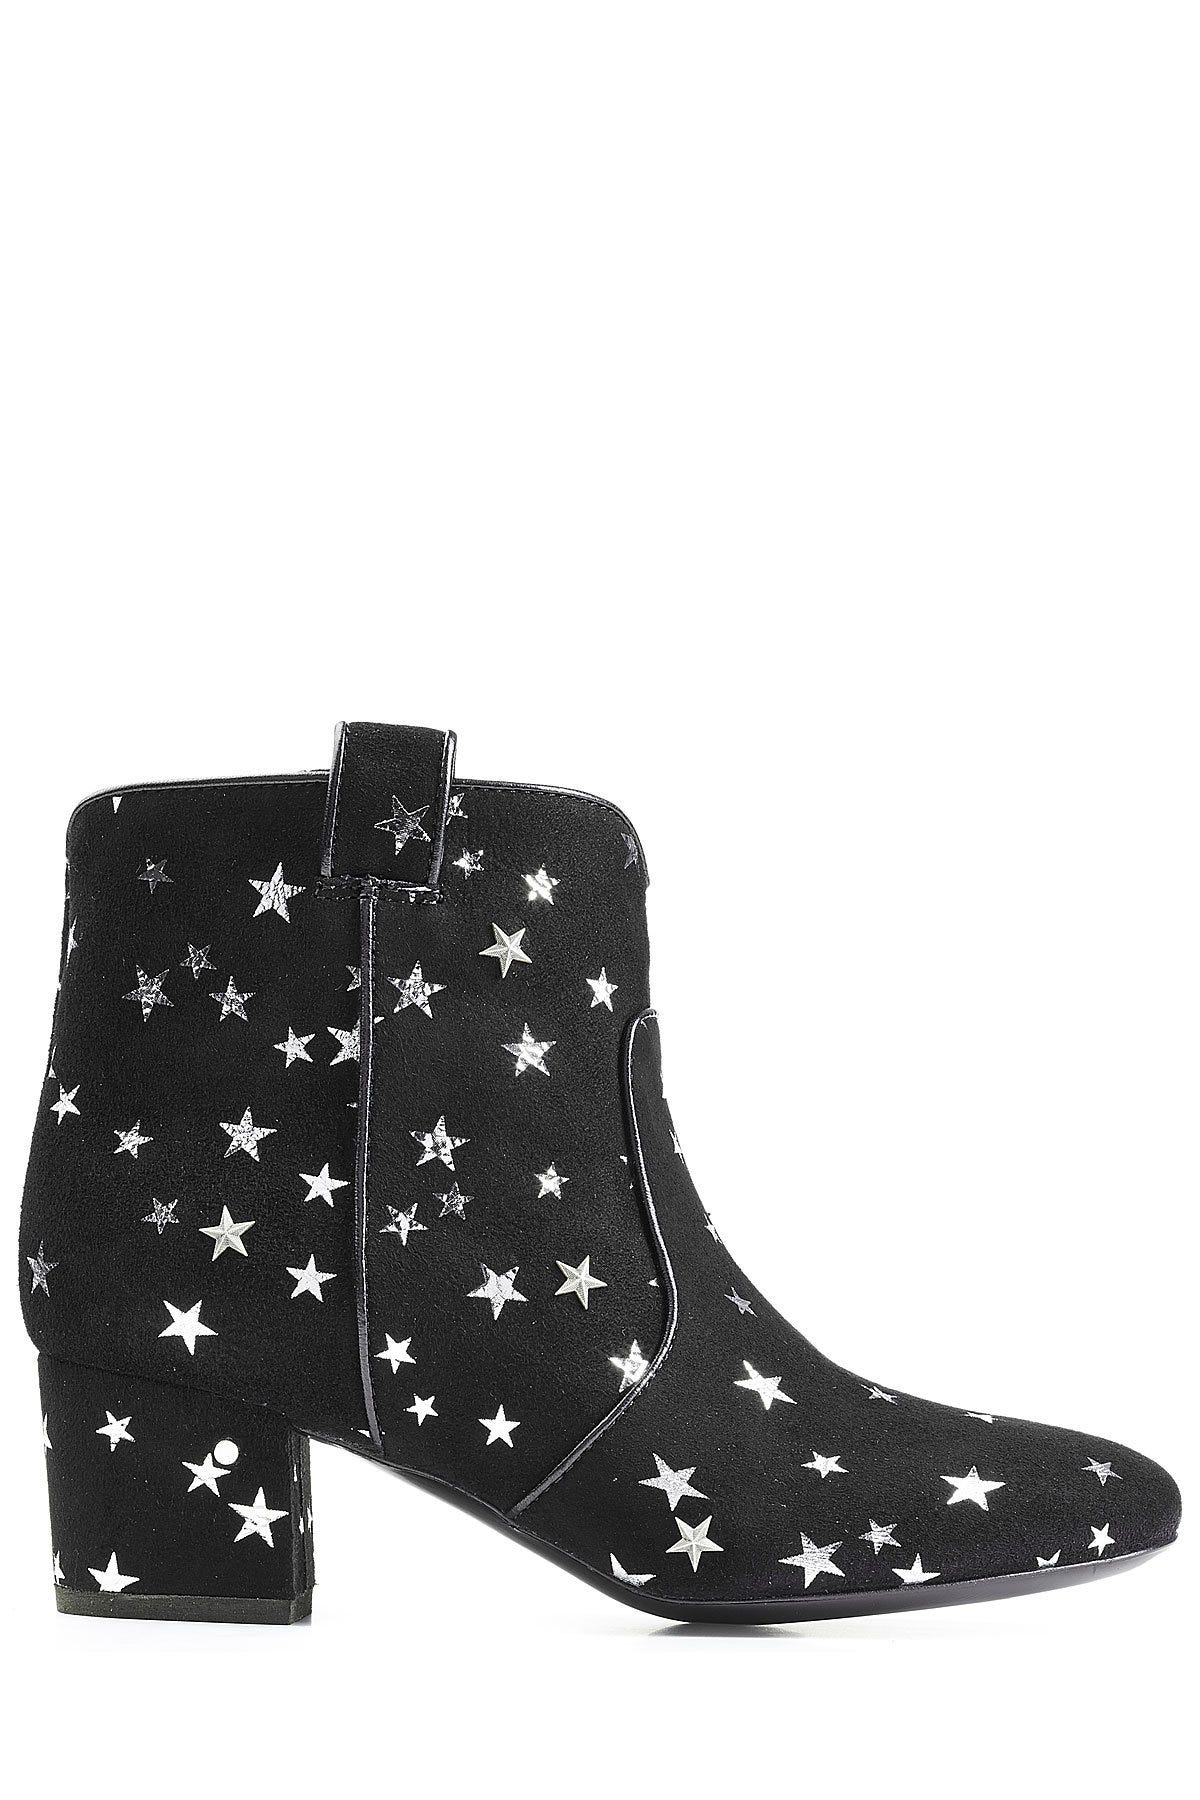 Womens Vintage Splicing Printed Ankle Boots | Boots